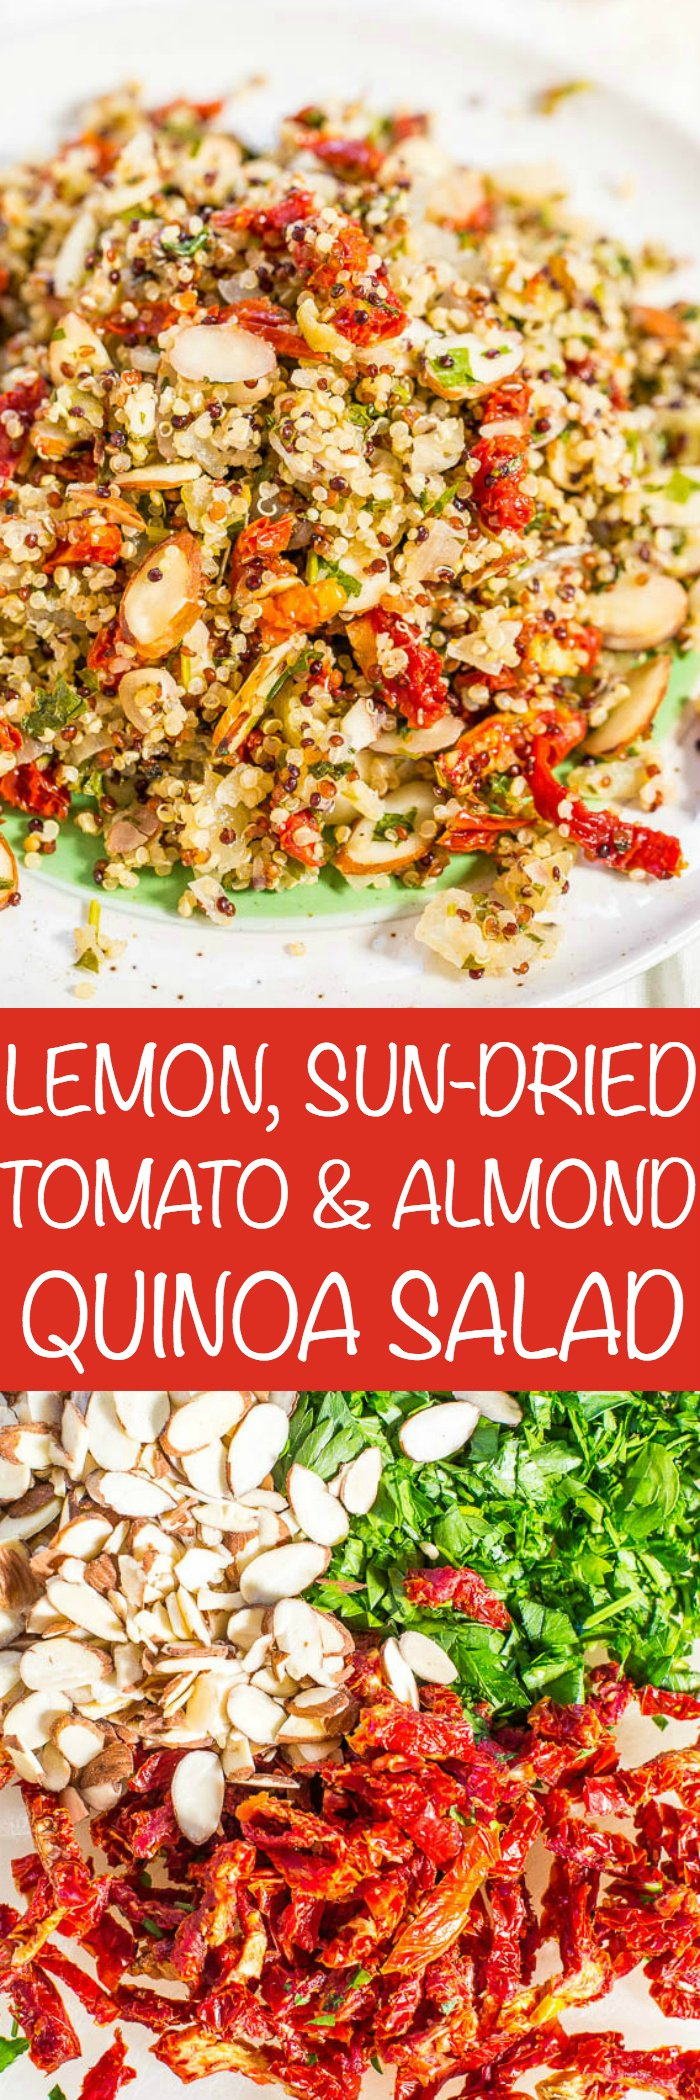 Zesty Quinoa Salad — Fast, easy, and fresh! Bright flavors and loads of texture! This clean-eating salad keeps you full and satisfied! Healthy never tasted so good!! (No mayo and great for outdoor events or lunch boxes!)